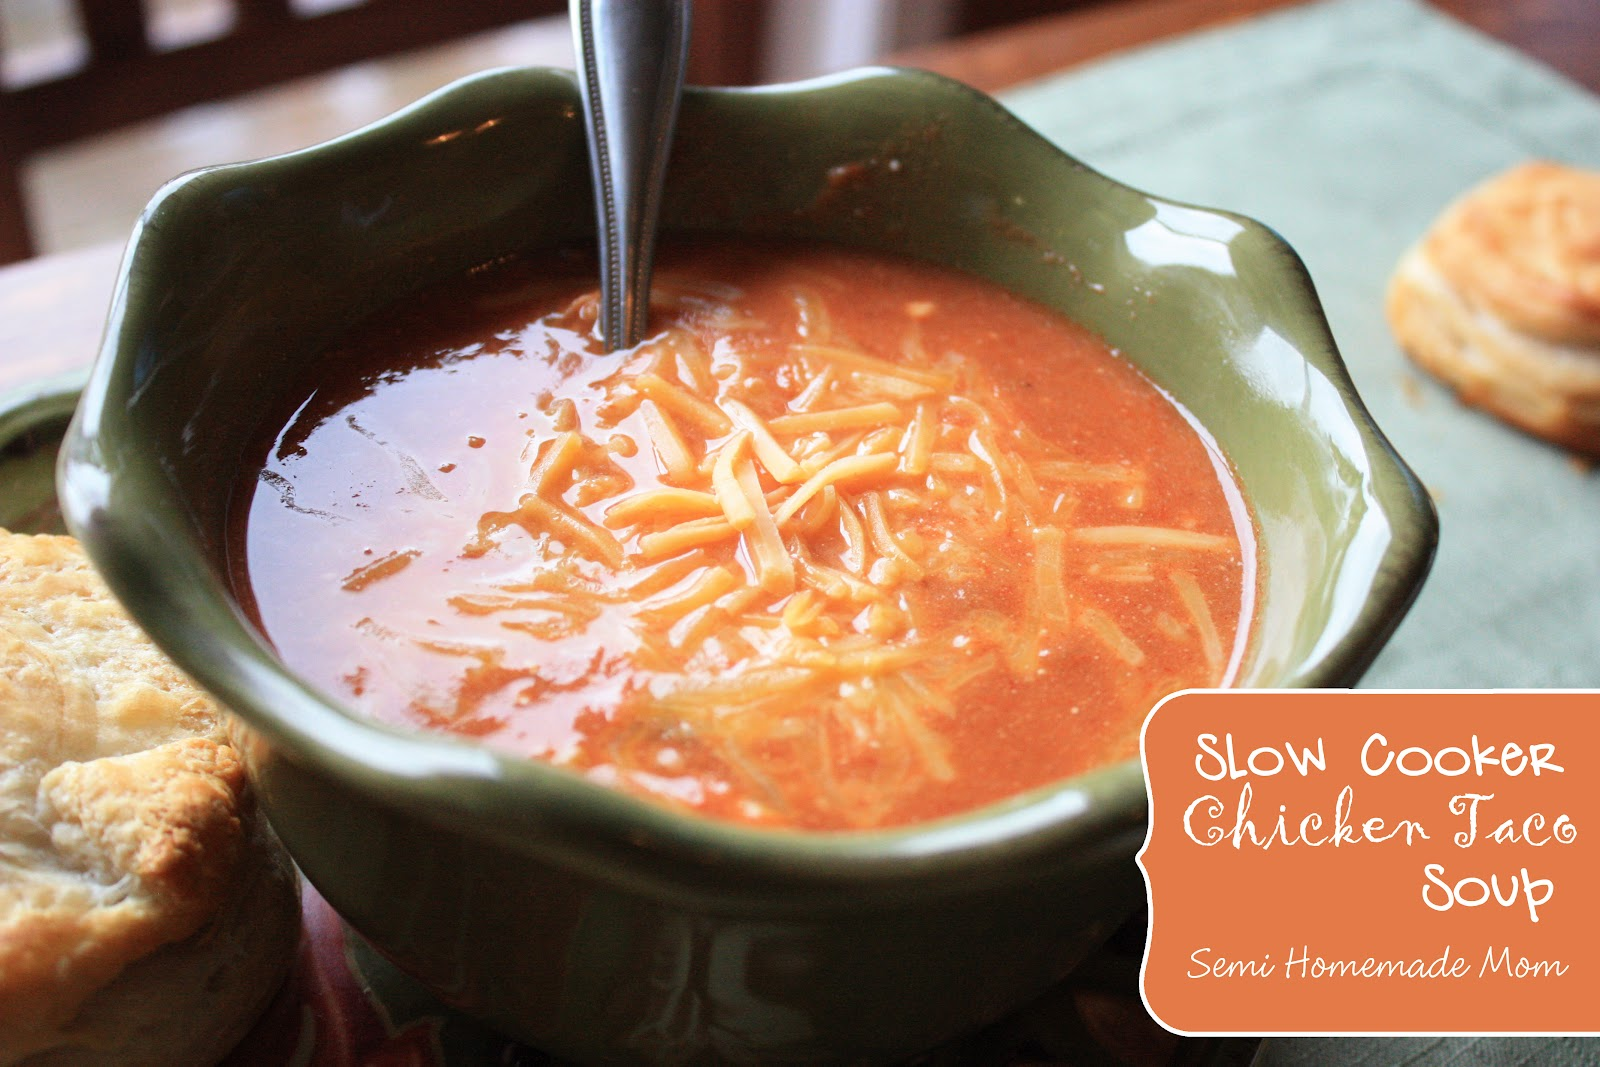 Crockpot Chicken Taco Soup | Mostly Homemade Mom